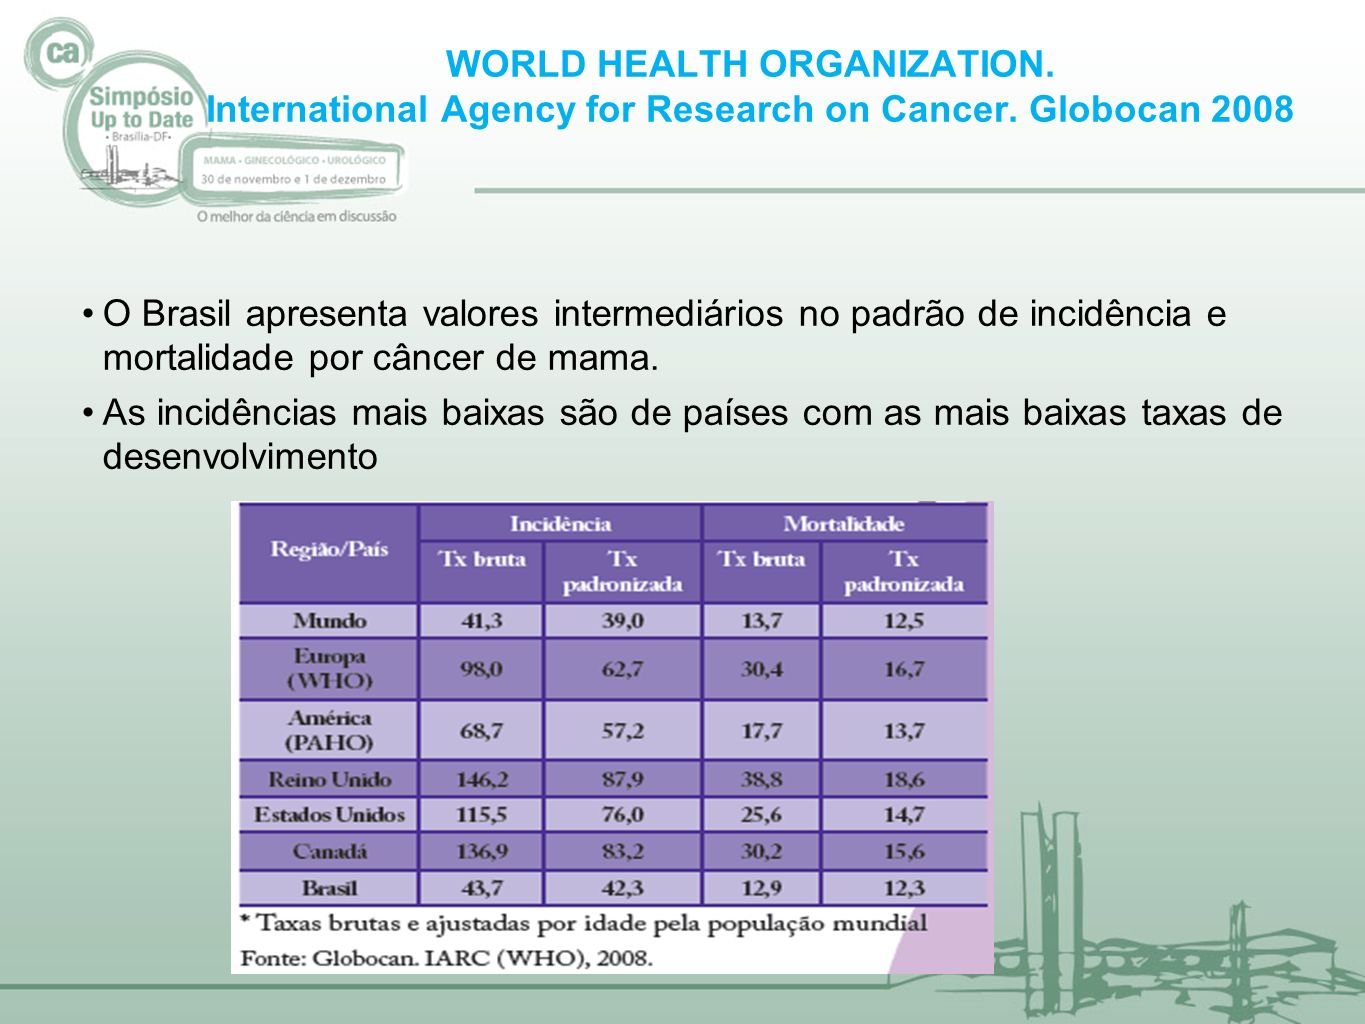 WORLD HEALTH ORGANIZATION. International Agency for Research on Cancer